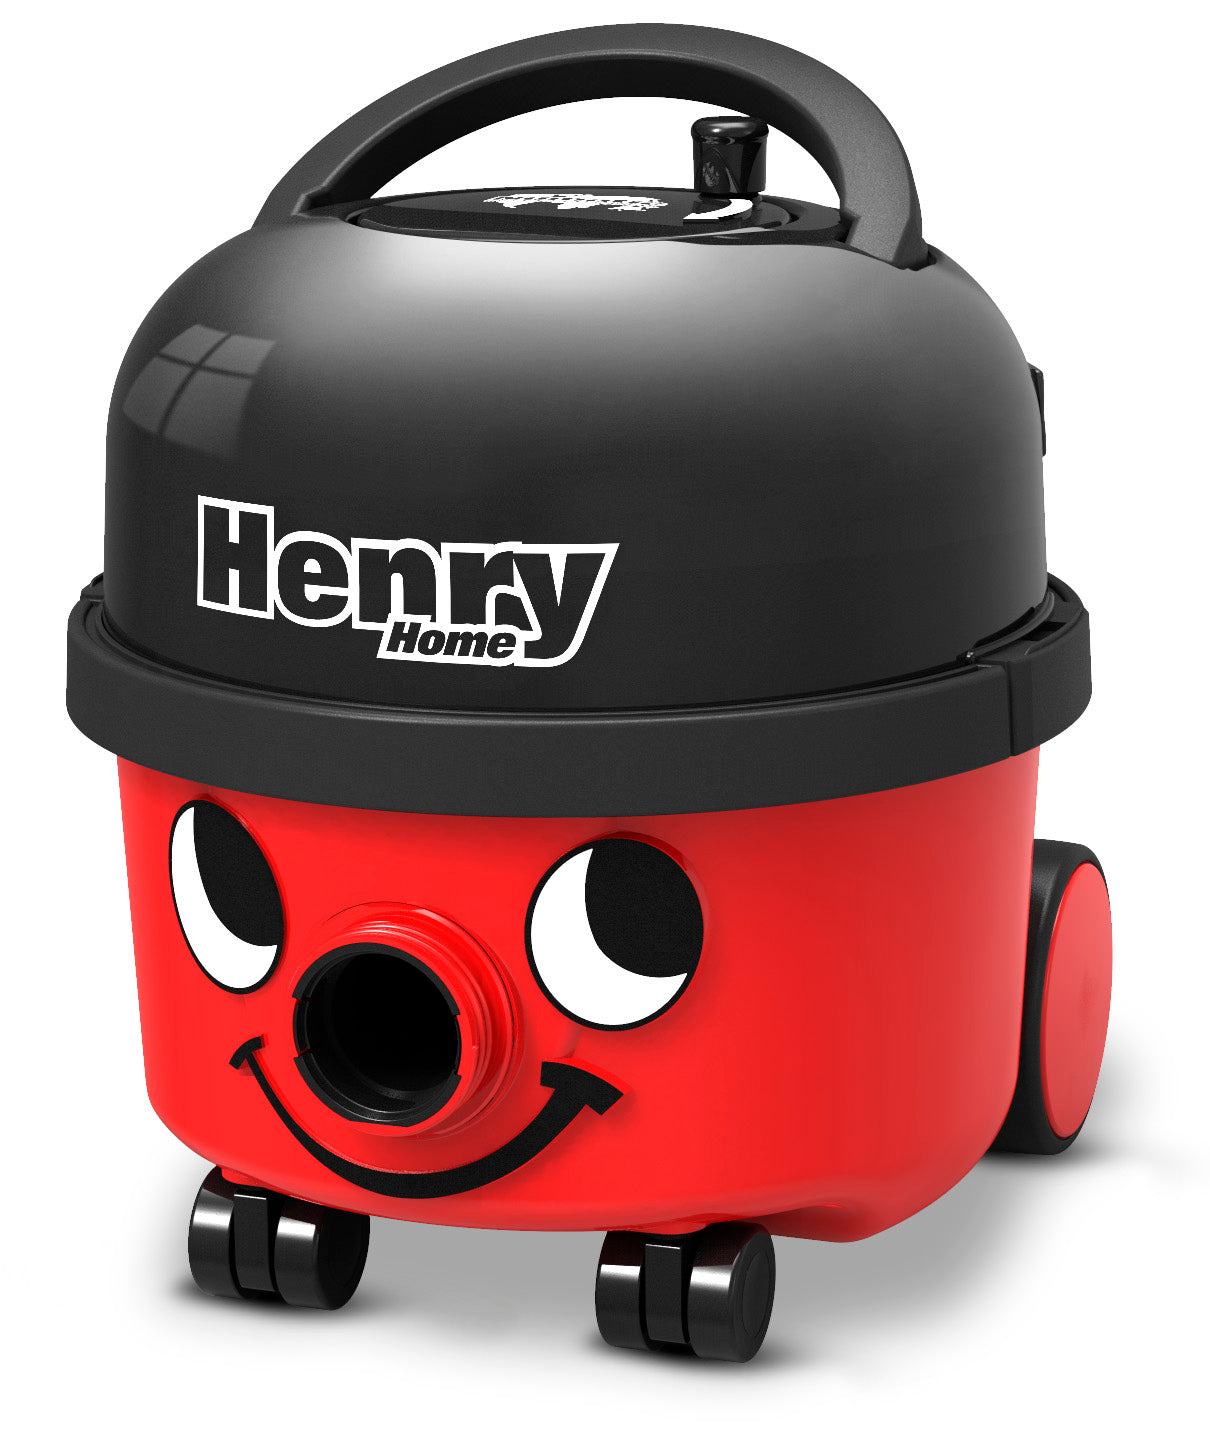 Henry Home